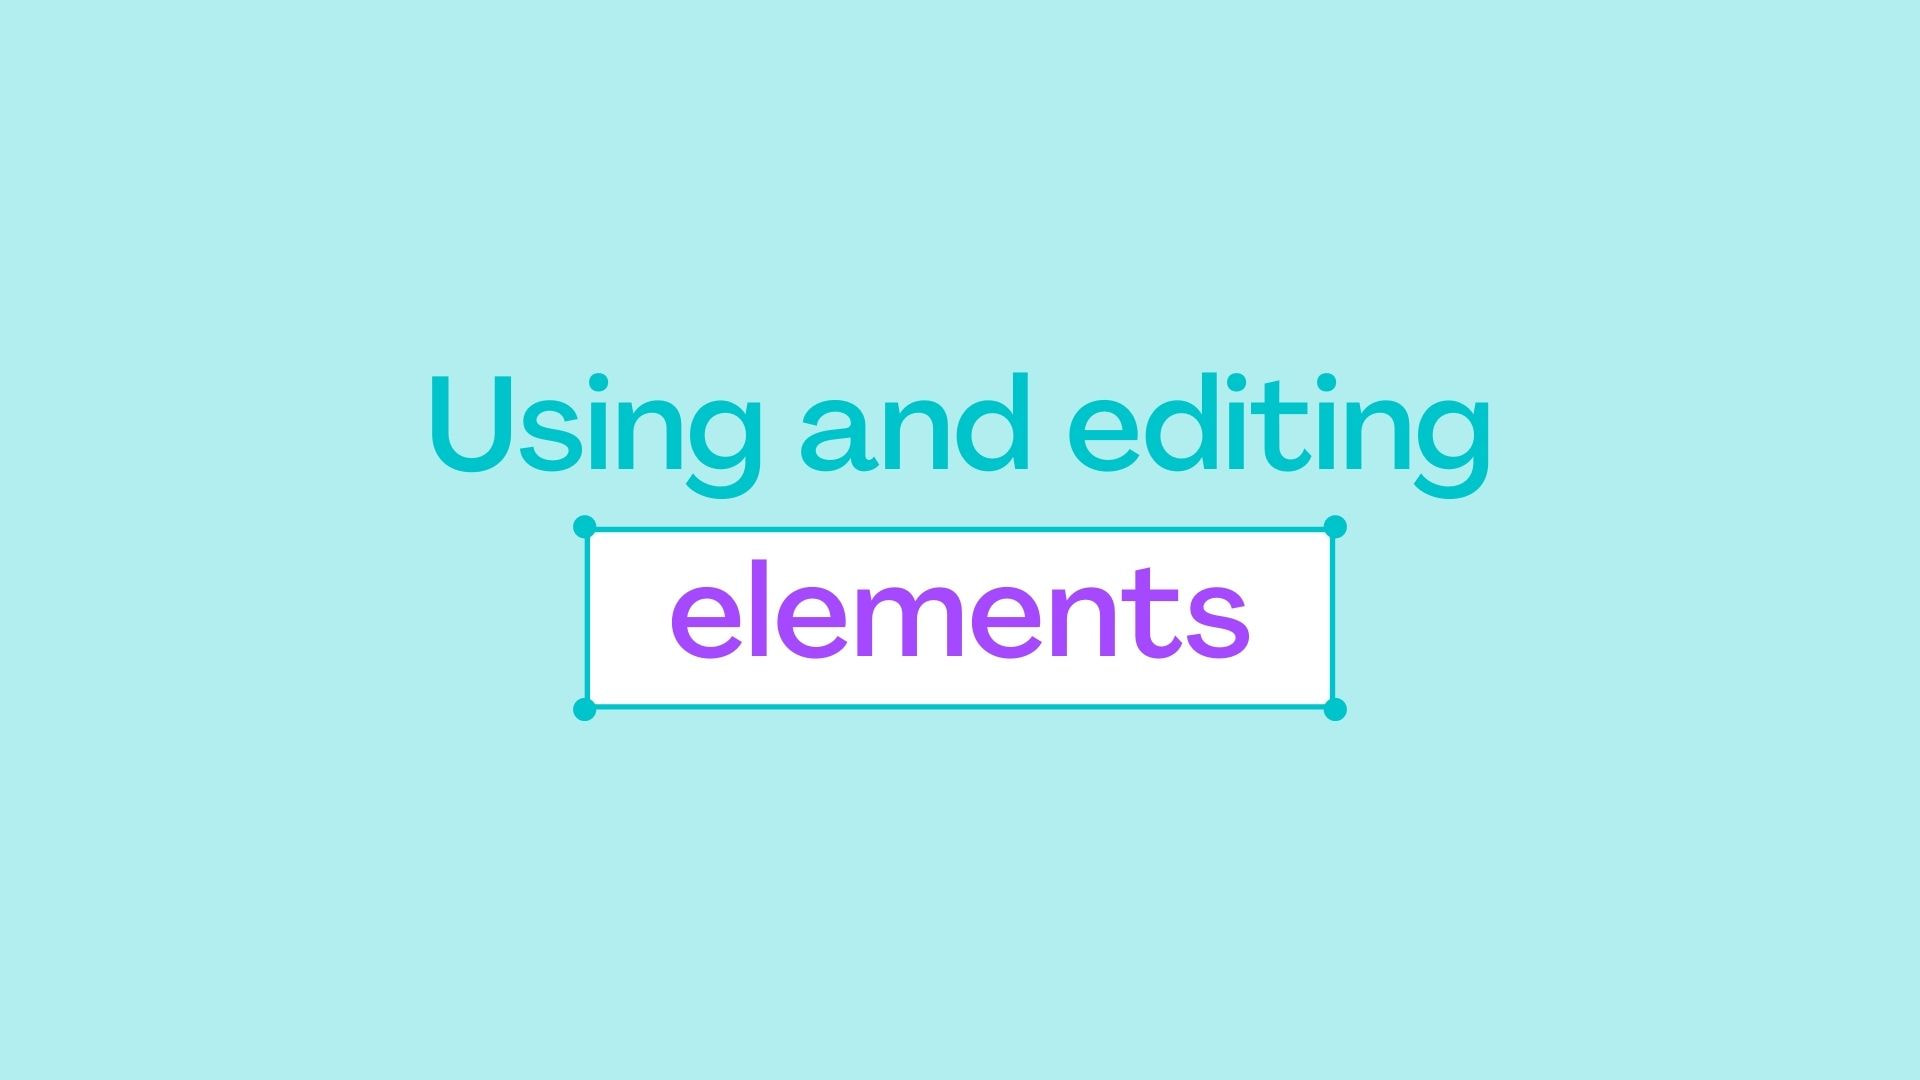 1.5 Using and editing elements